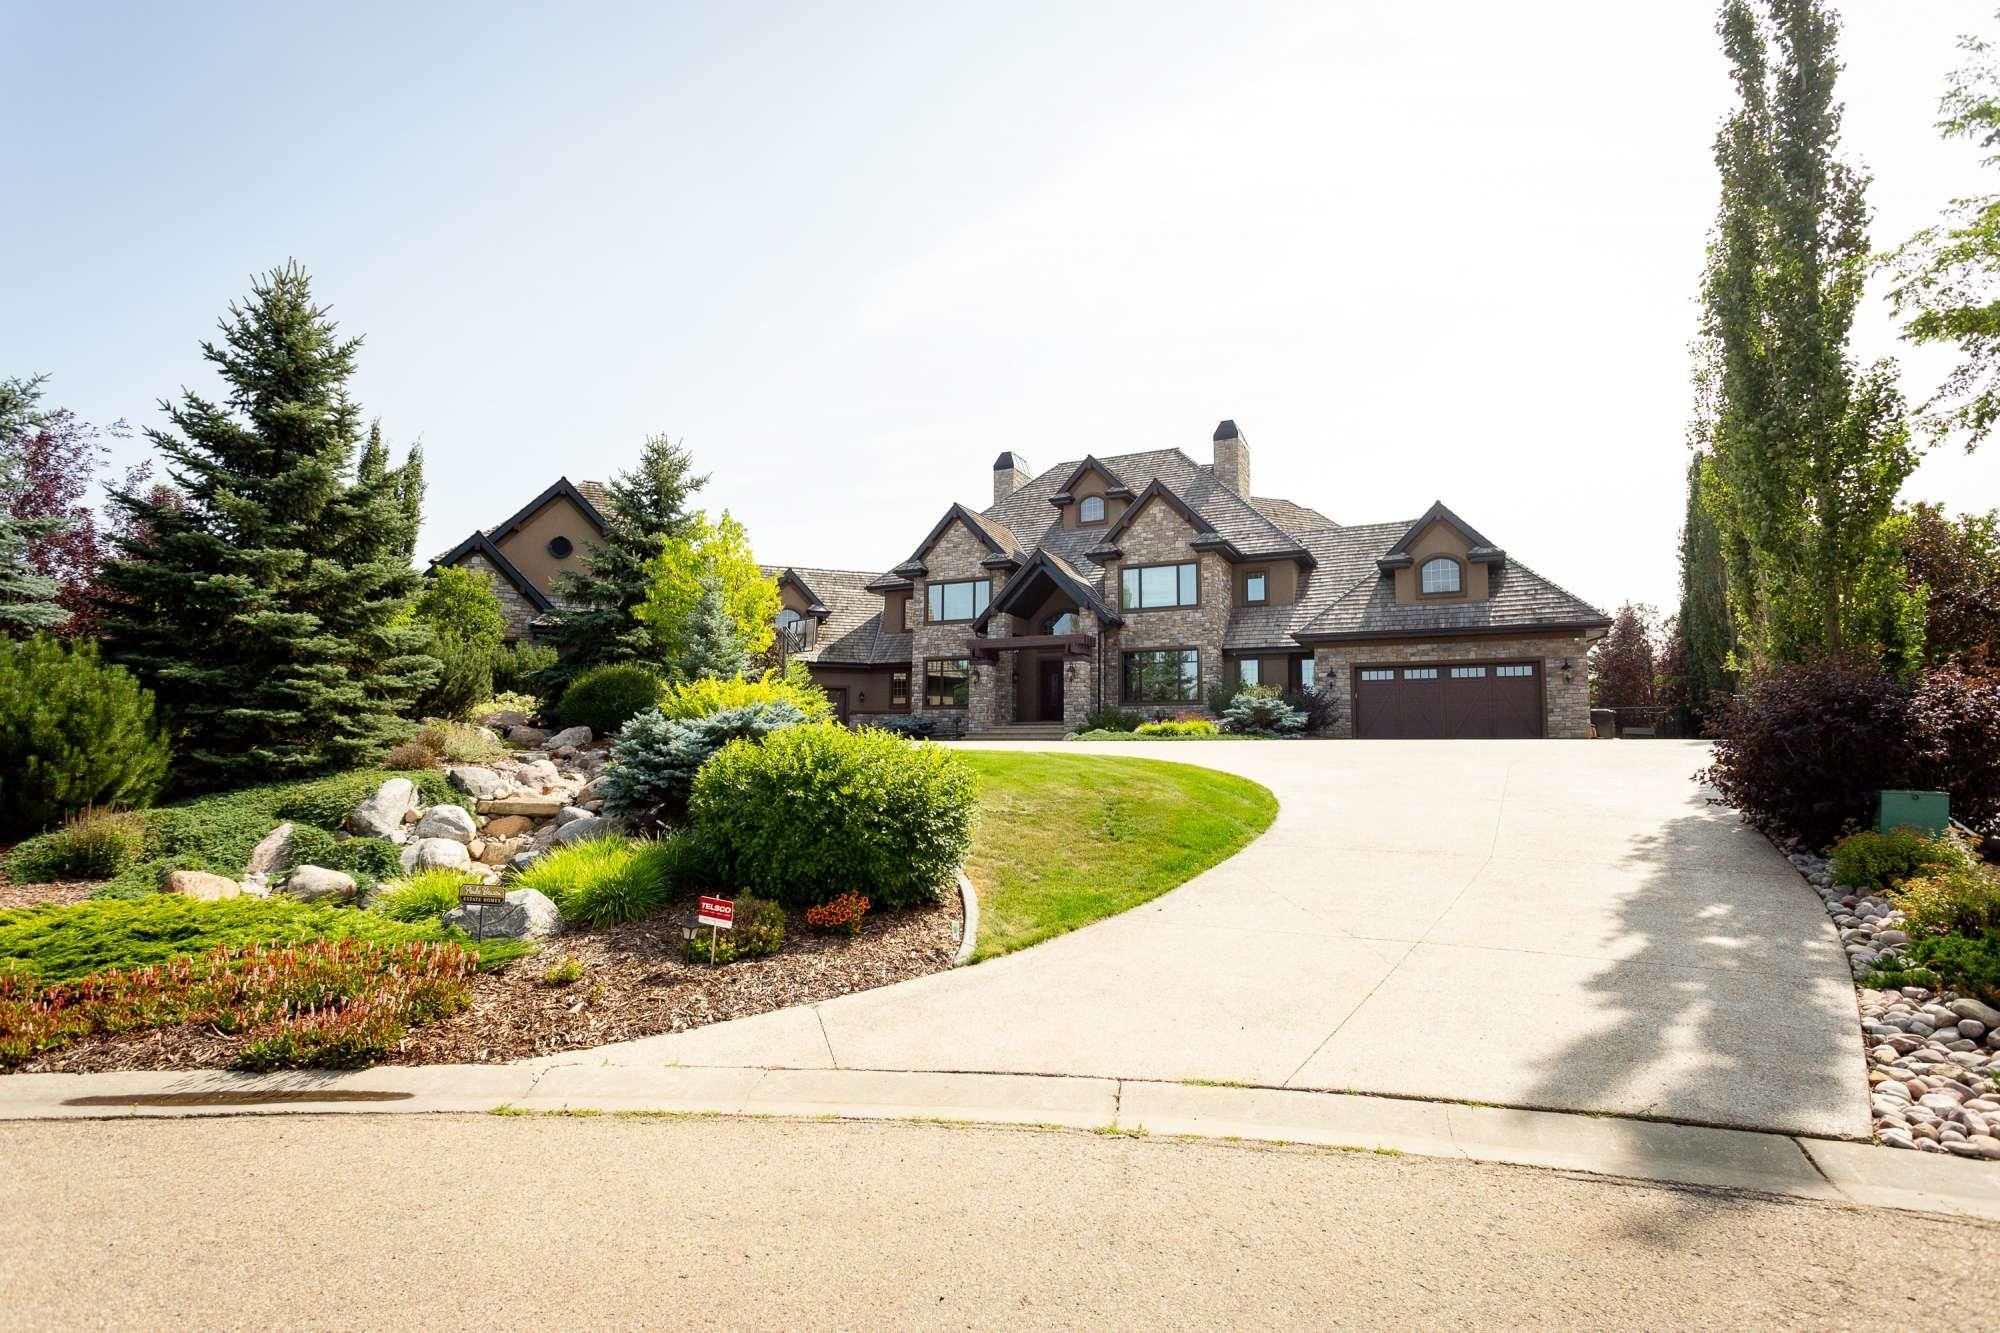 Main Photo: 101 Riverpointe Crescent: Rural Sturgeon County House for sale : MLS®# E4260694